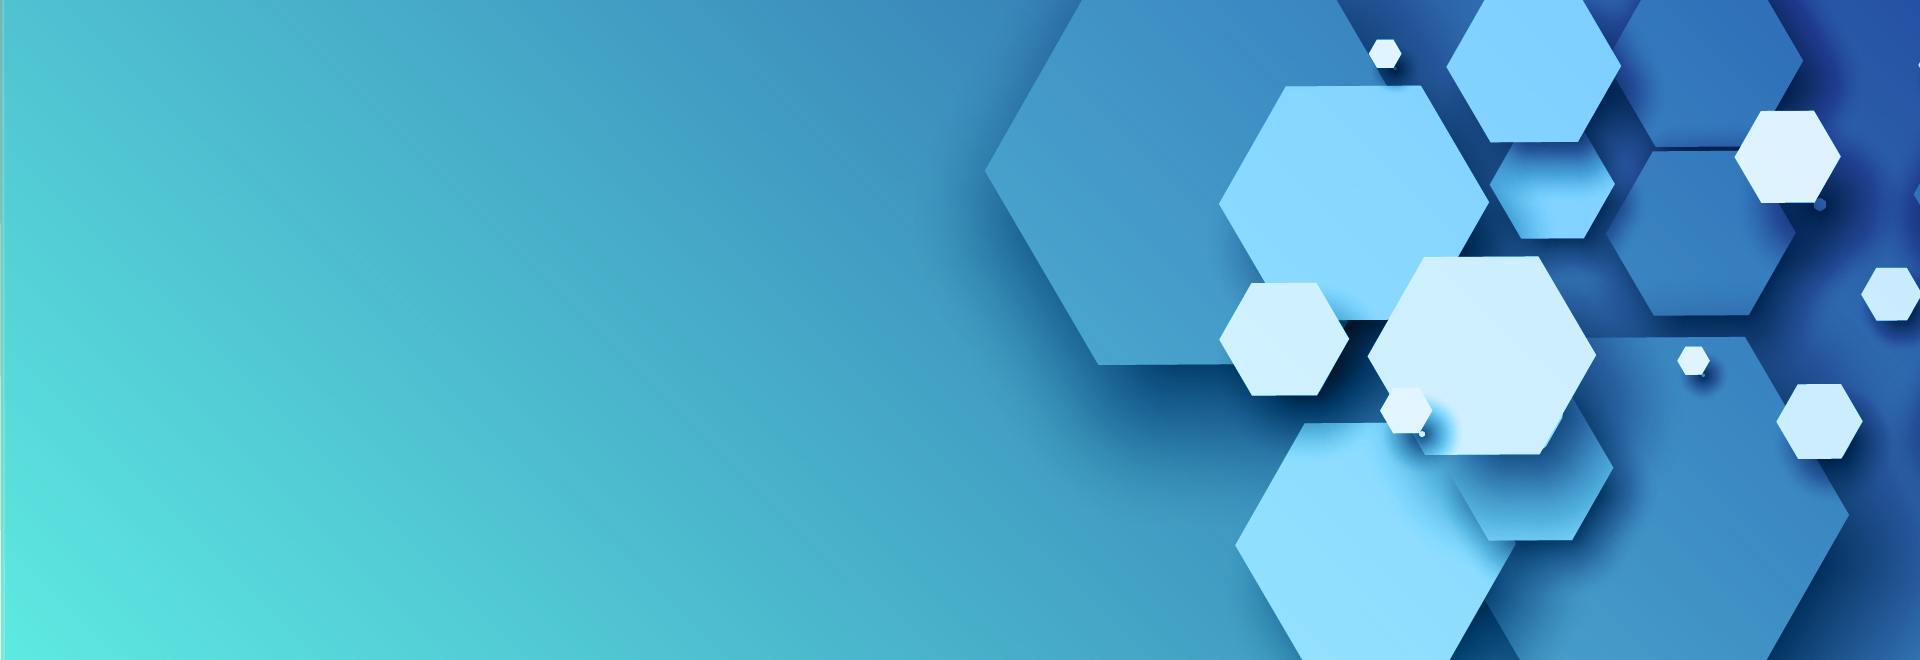 blue blog banner with hexagonal design